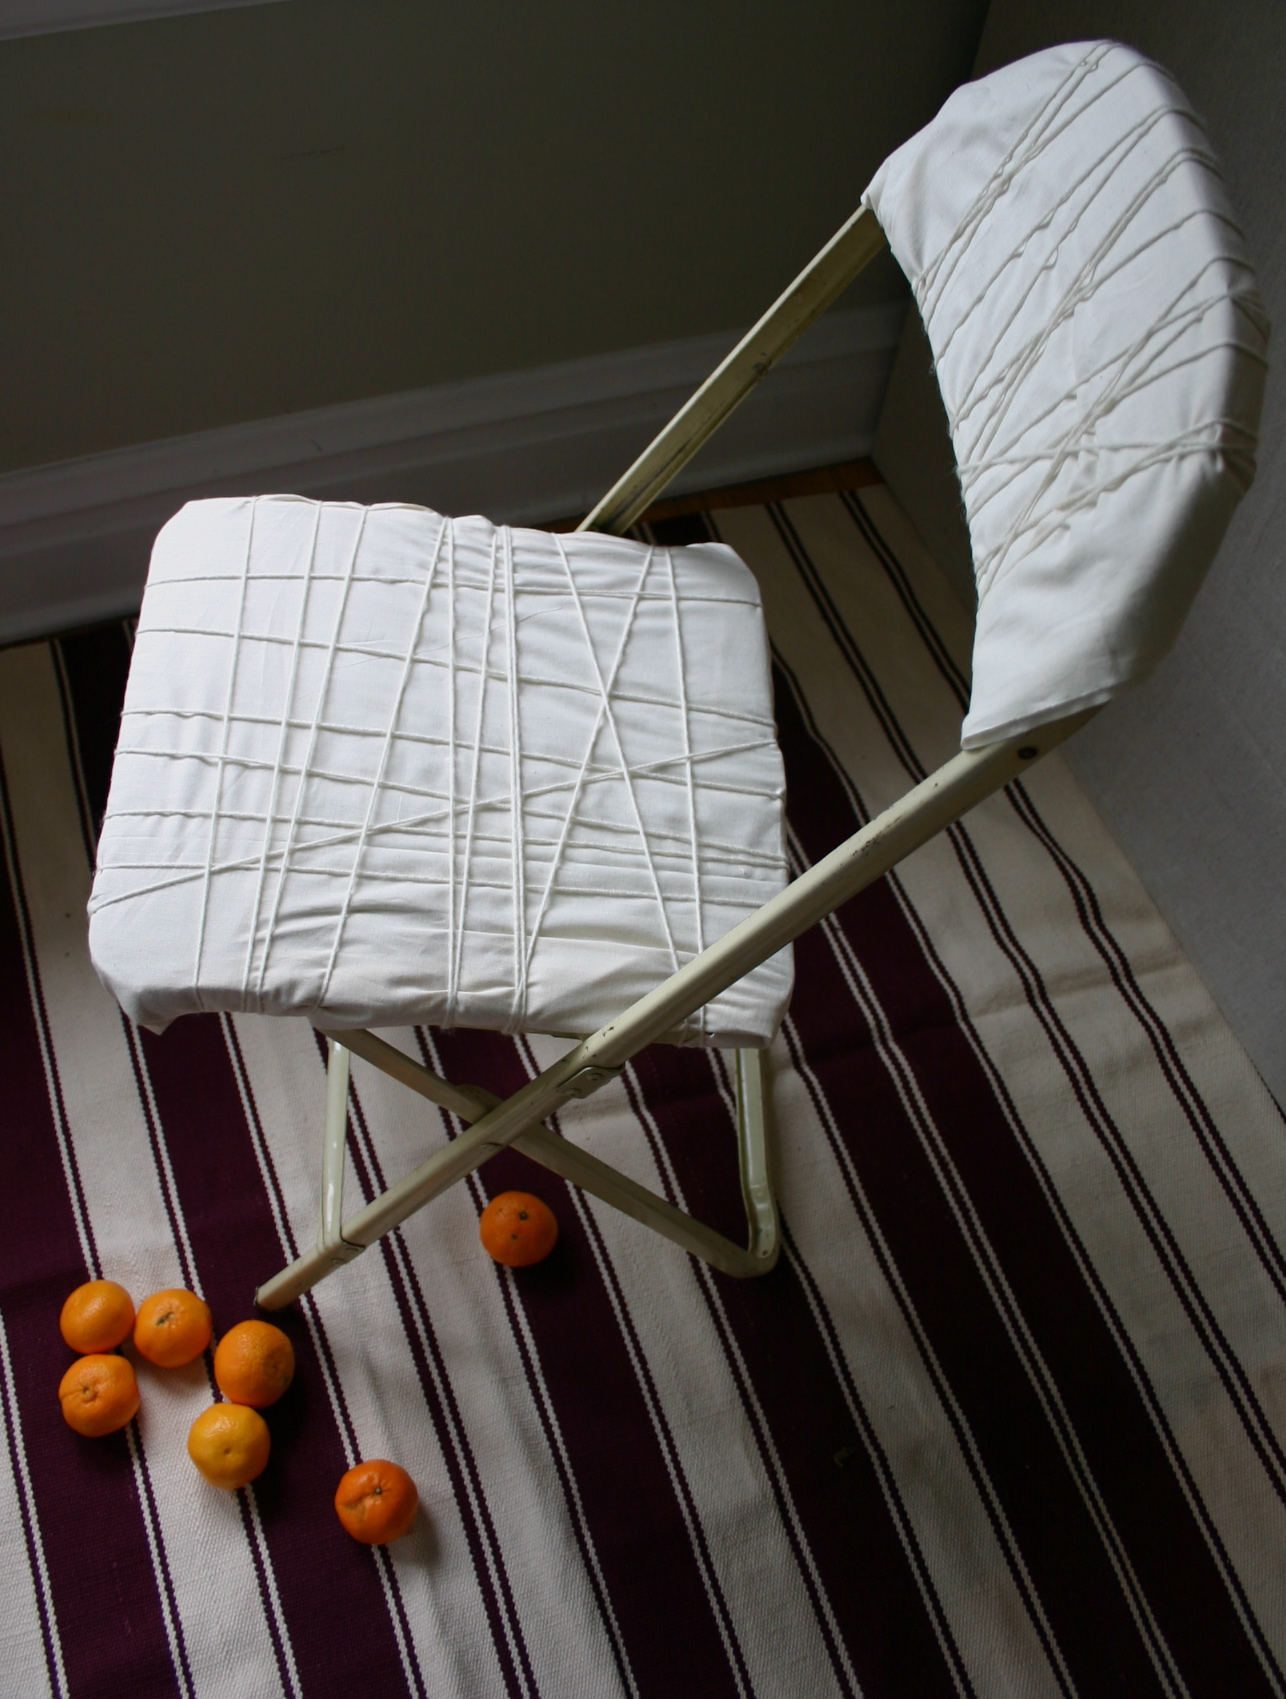 Entertaining a large crowd can leave me short on seating. Here I have transformed a $2.00 resale shop folding chair into a more stylish extra seat using muslin, yarn and rubber bands.